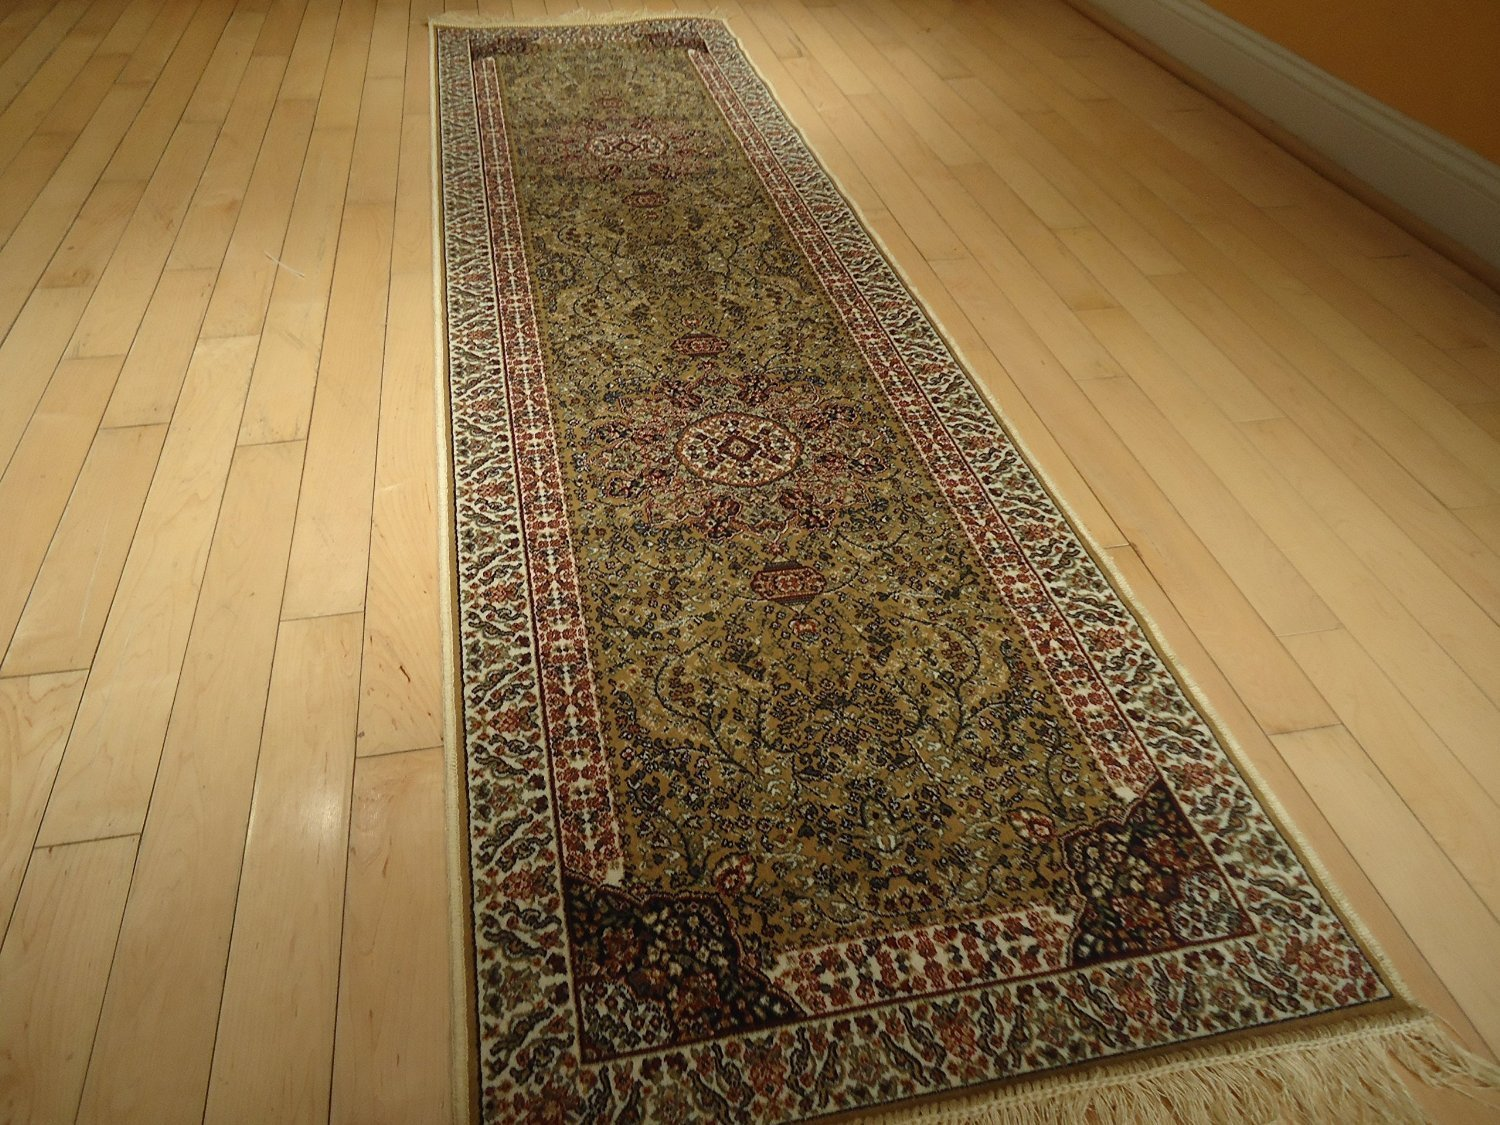 designs runner photos extra of showing hallway long rug rugs runners idea hall regarding viewing classy decoration plain